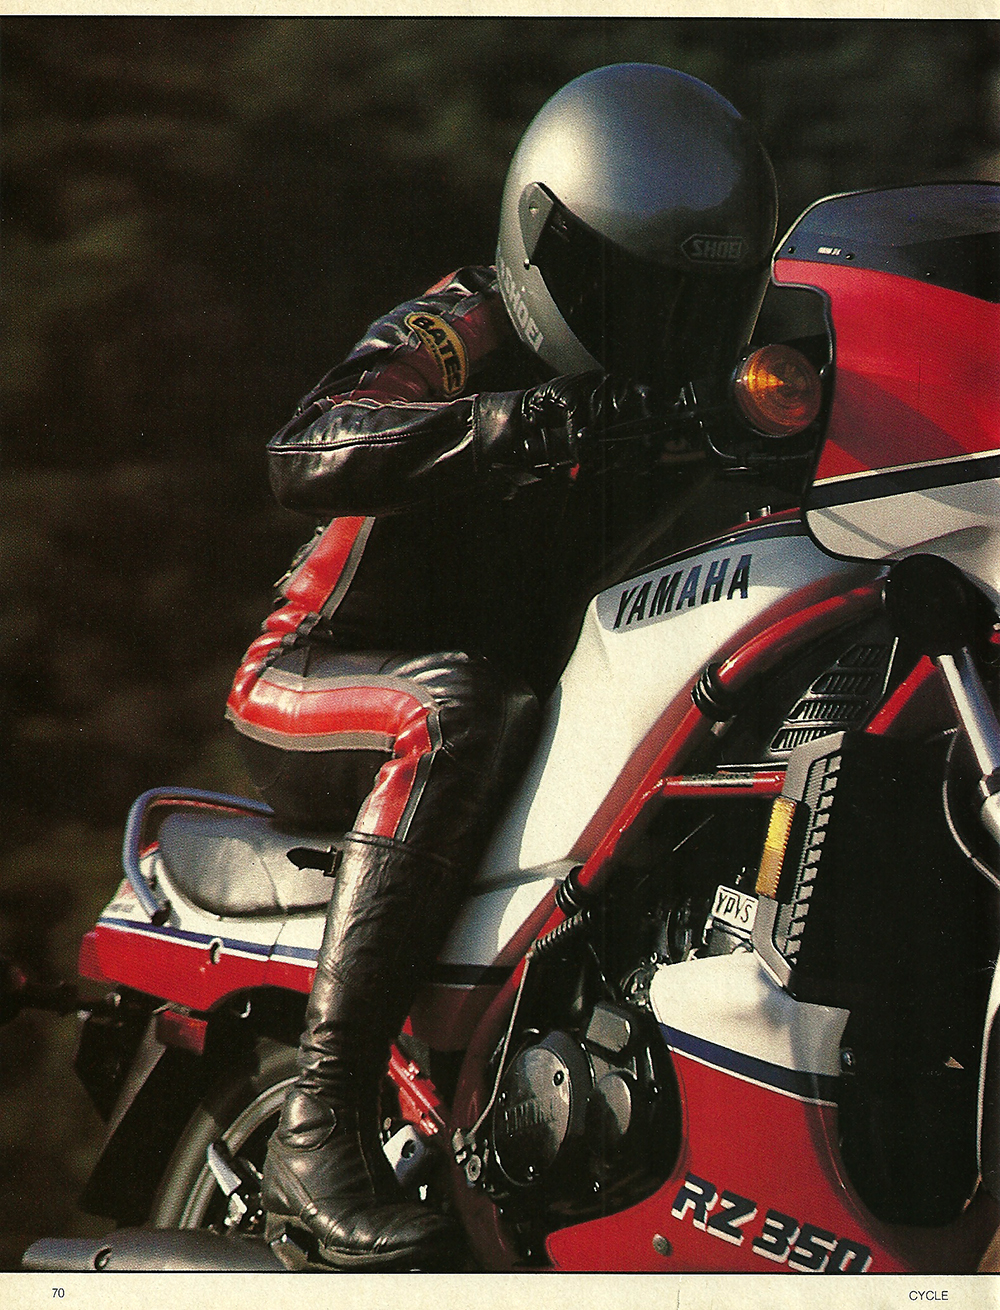 1984 Yamaha RZ350L road test 01.jpg